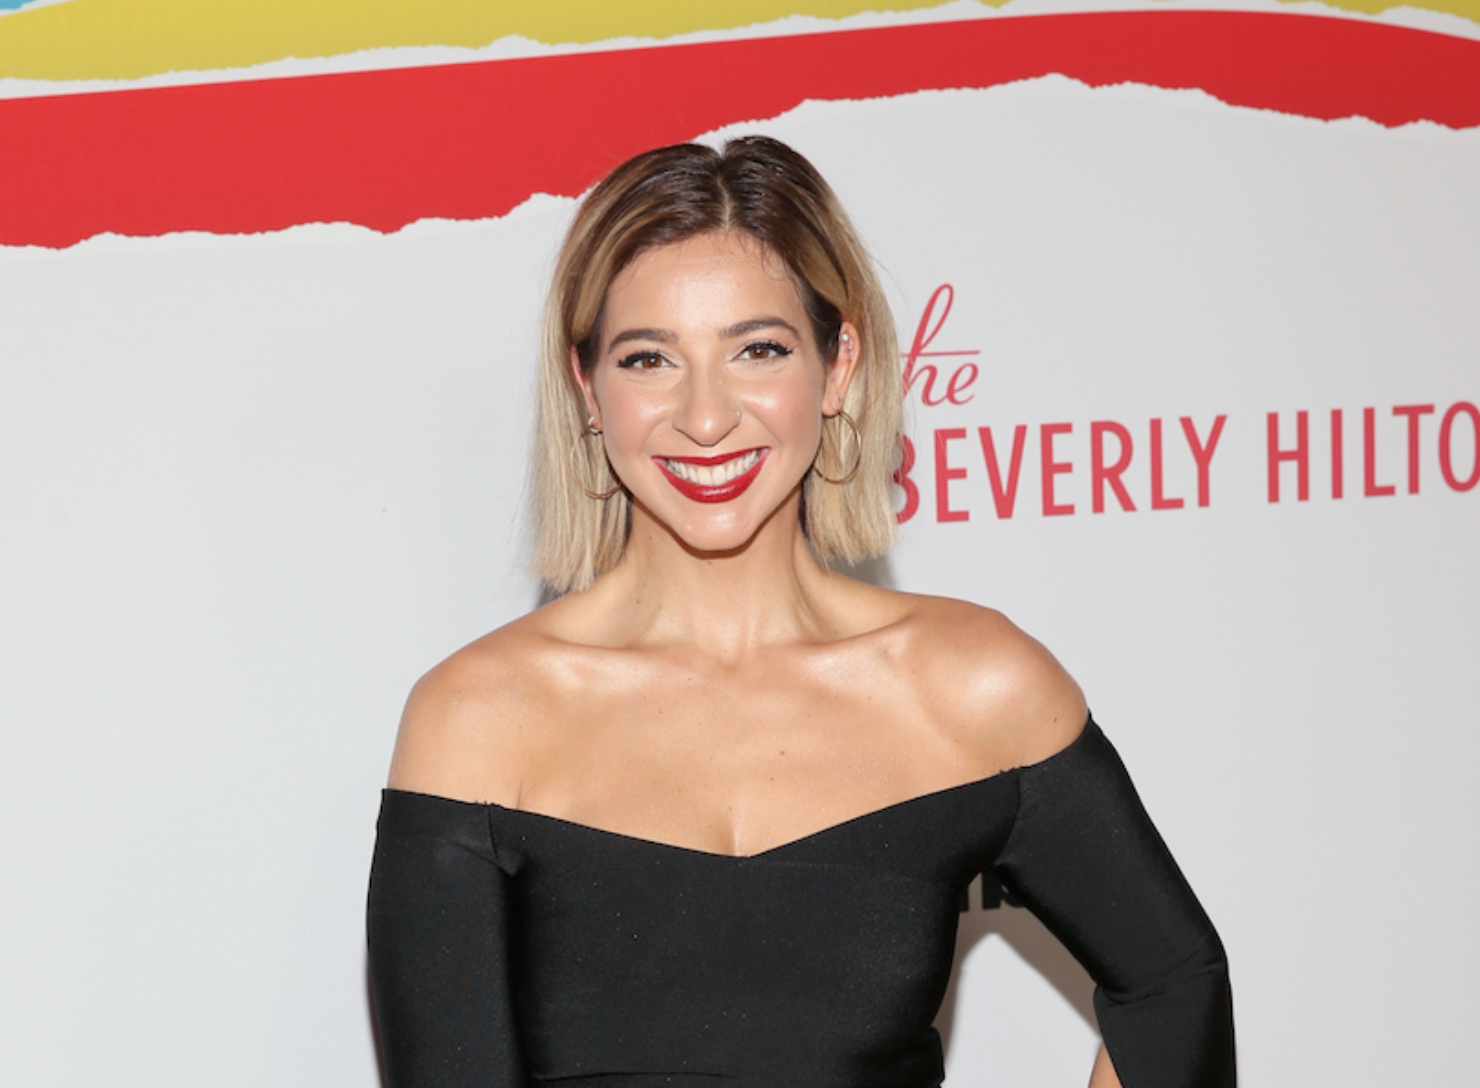 YouTuber Gabbie Hanna 'Faked' Her Coachella Experience